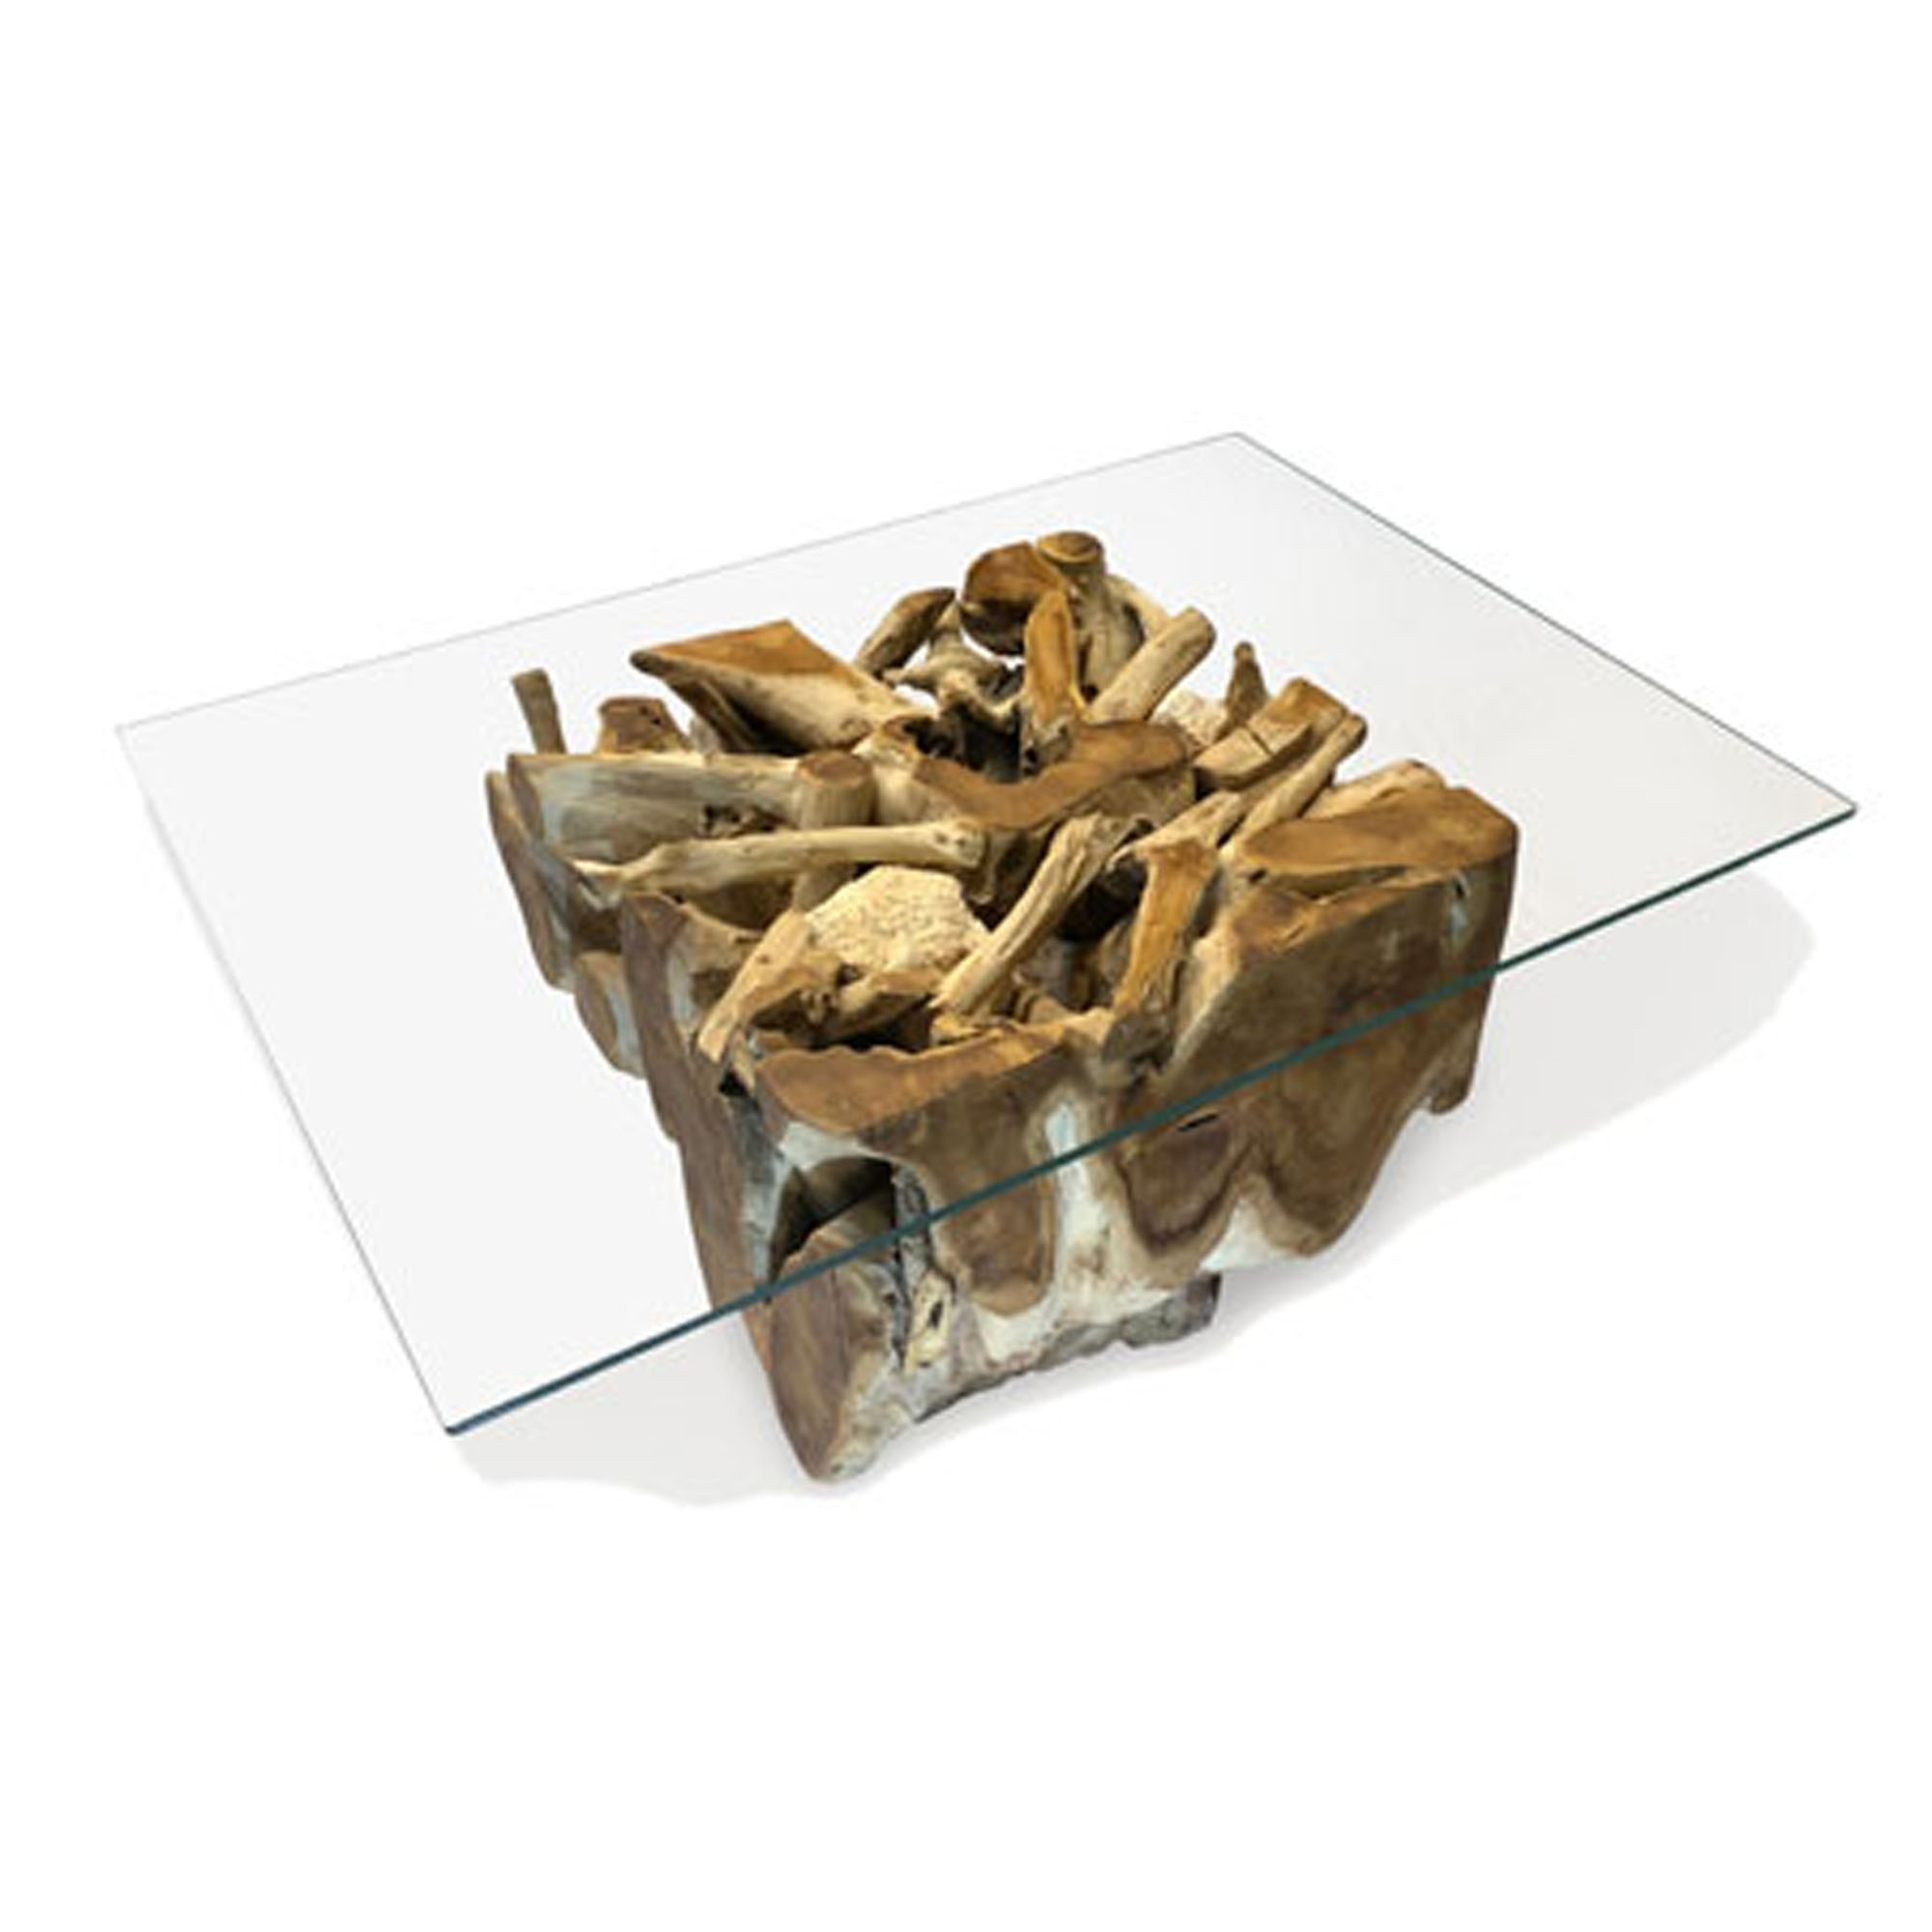 Driftwood Coffee Table Teak Root Spider Stone Rectangular Glass